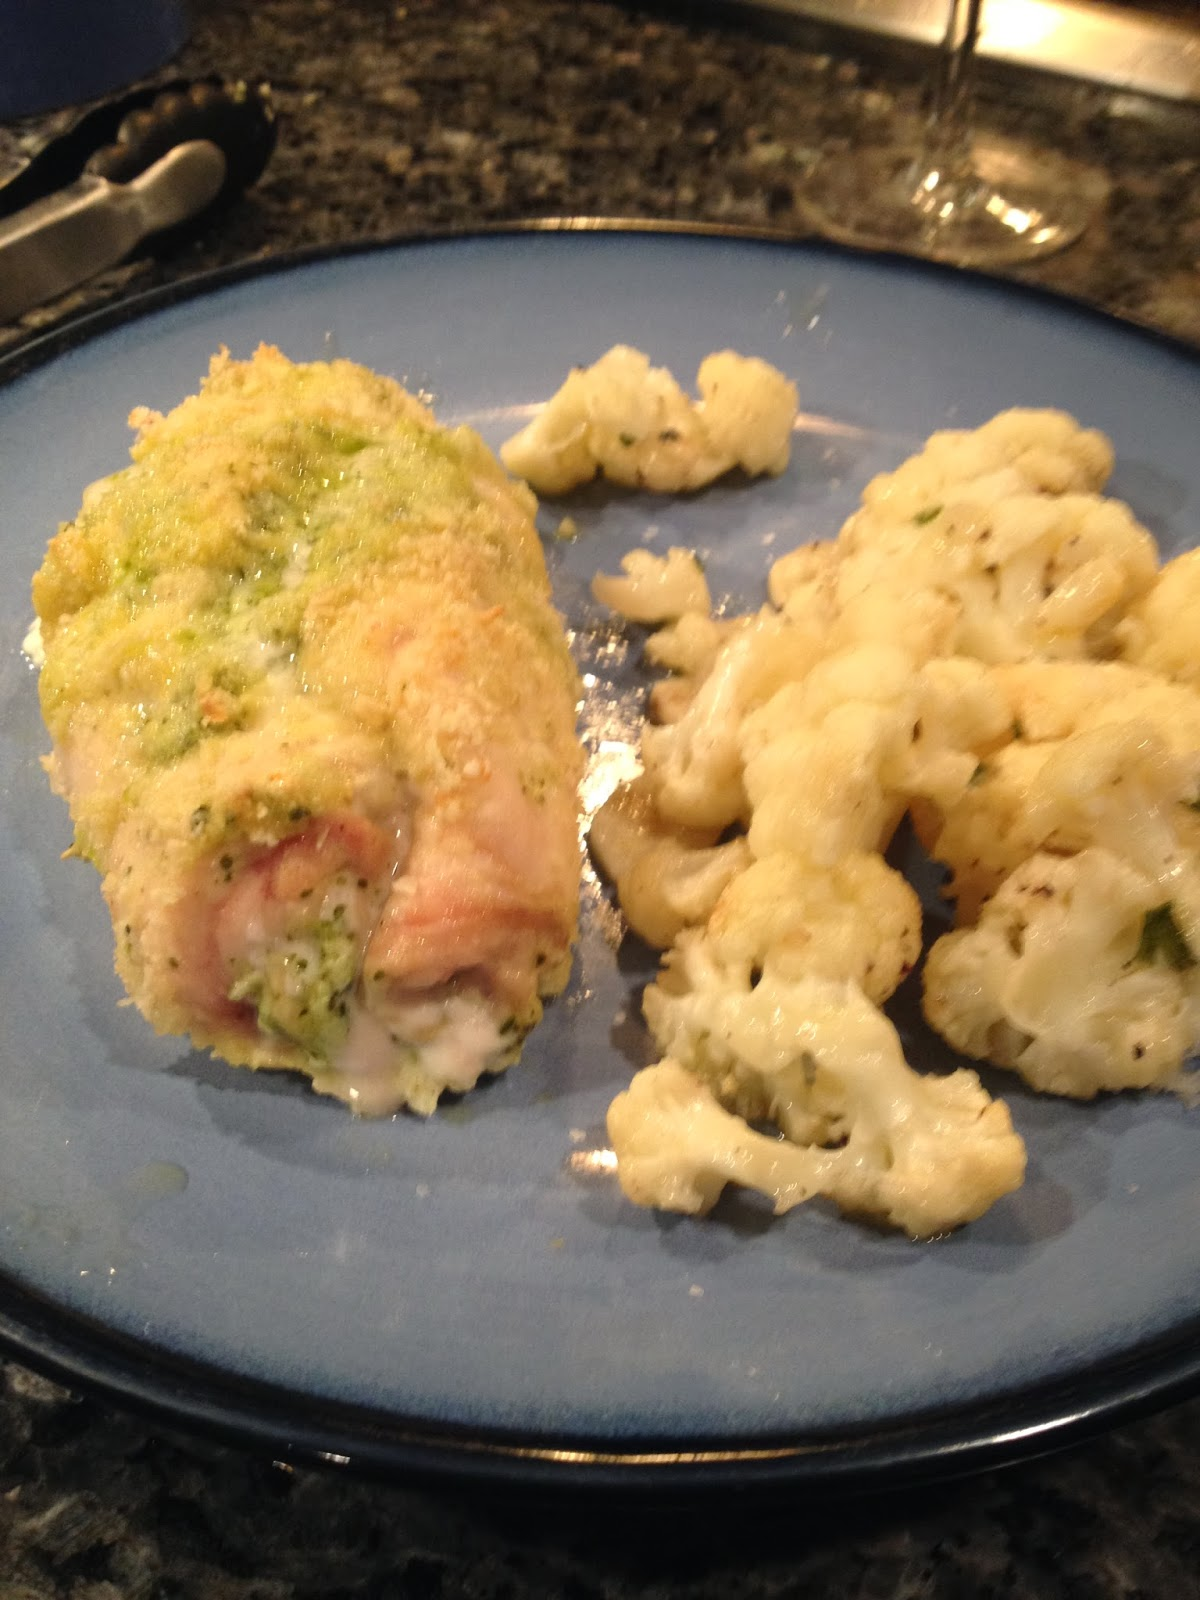 50 Shades of Eating: Baked Chicken Stuffed with Pesto and ...